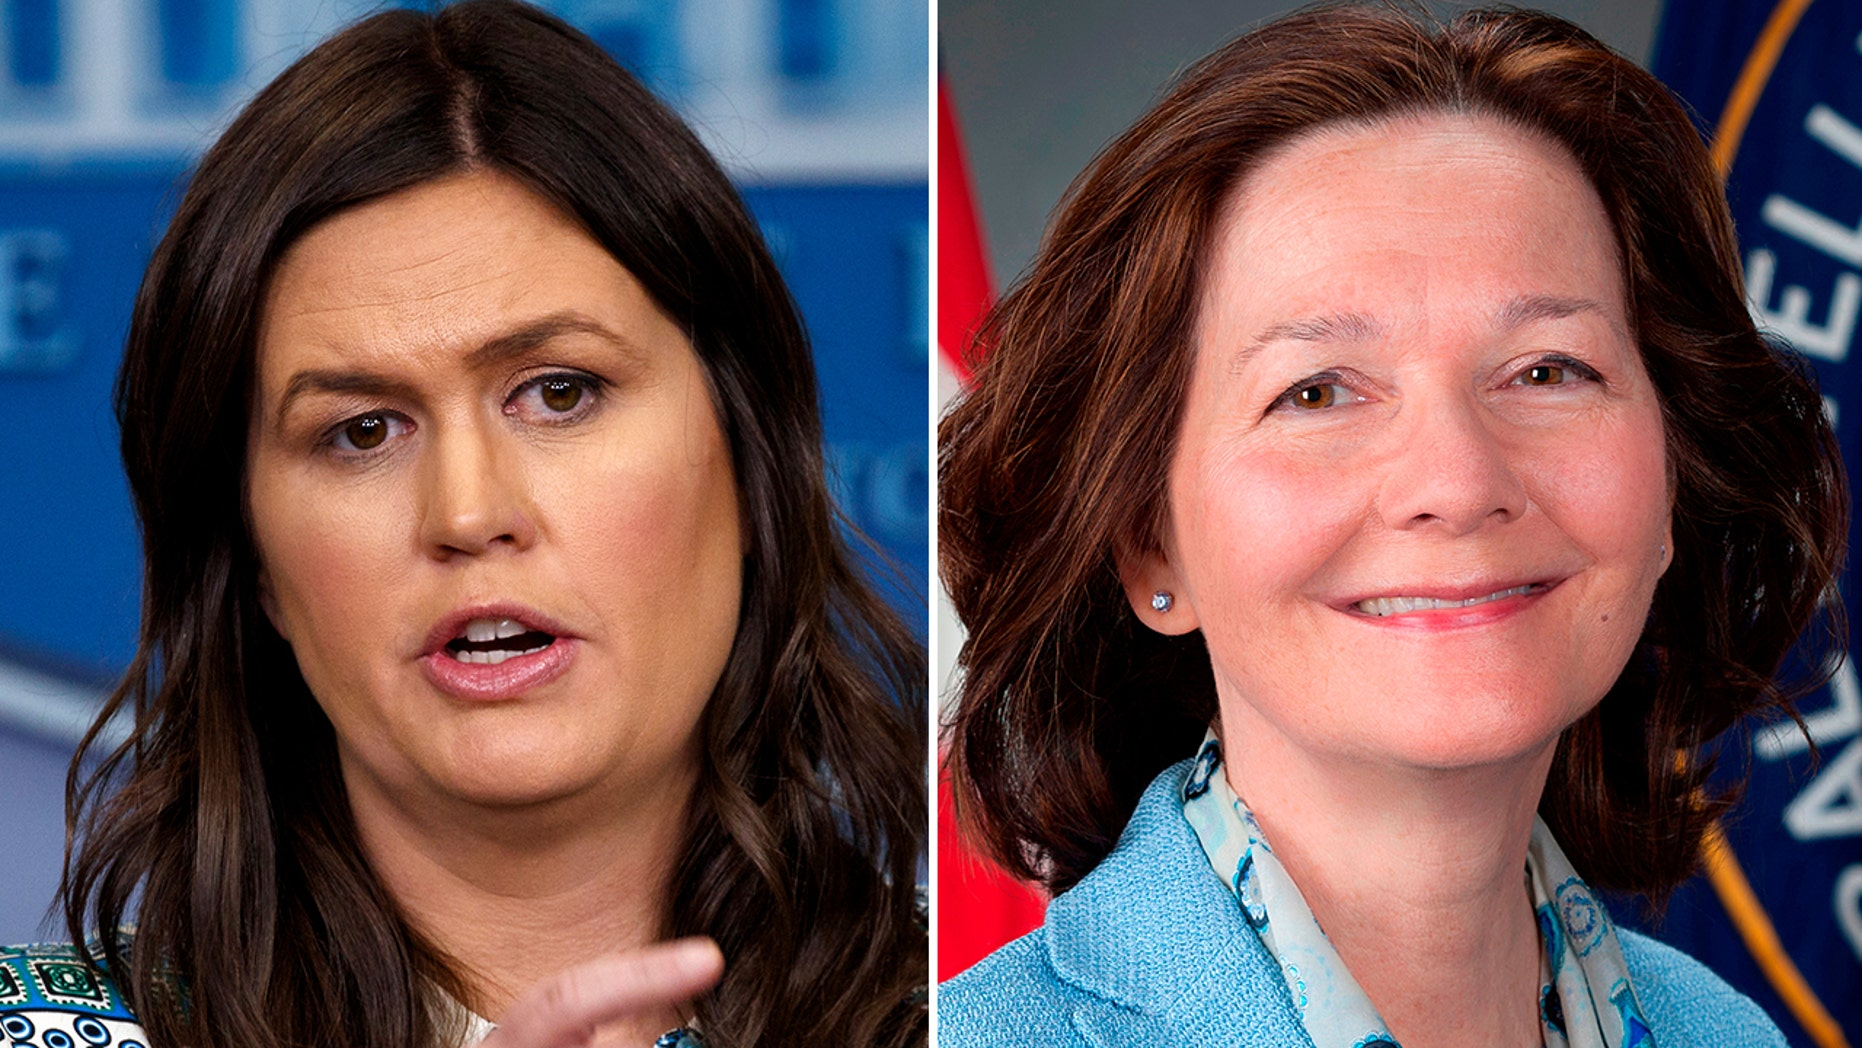 """White House Press Secretary Sarah Huckabee Sanders tweeted Saturday that any Democrat who doesn't support CIA director nominee Gina Haspel is a """"hypocrite."""""""